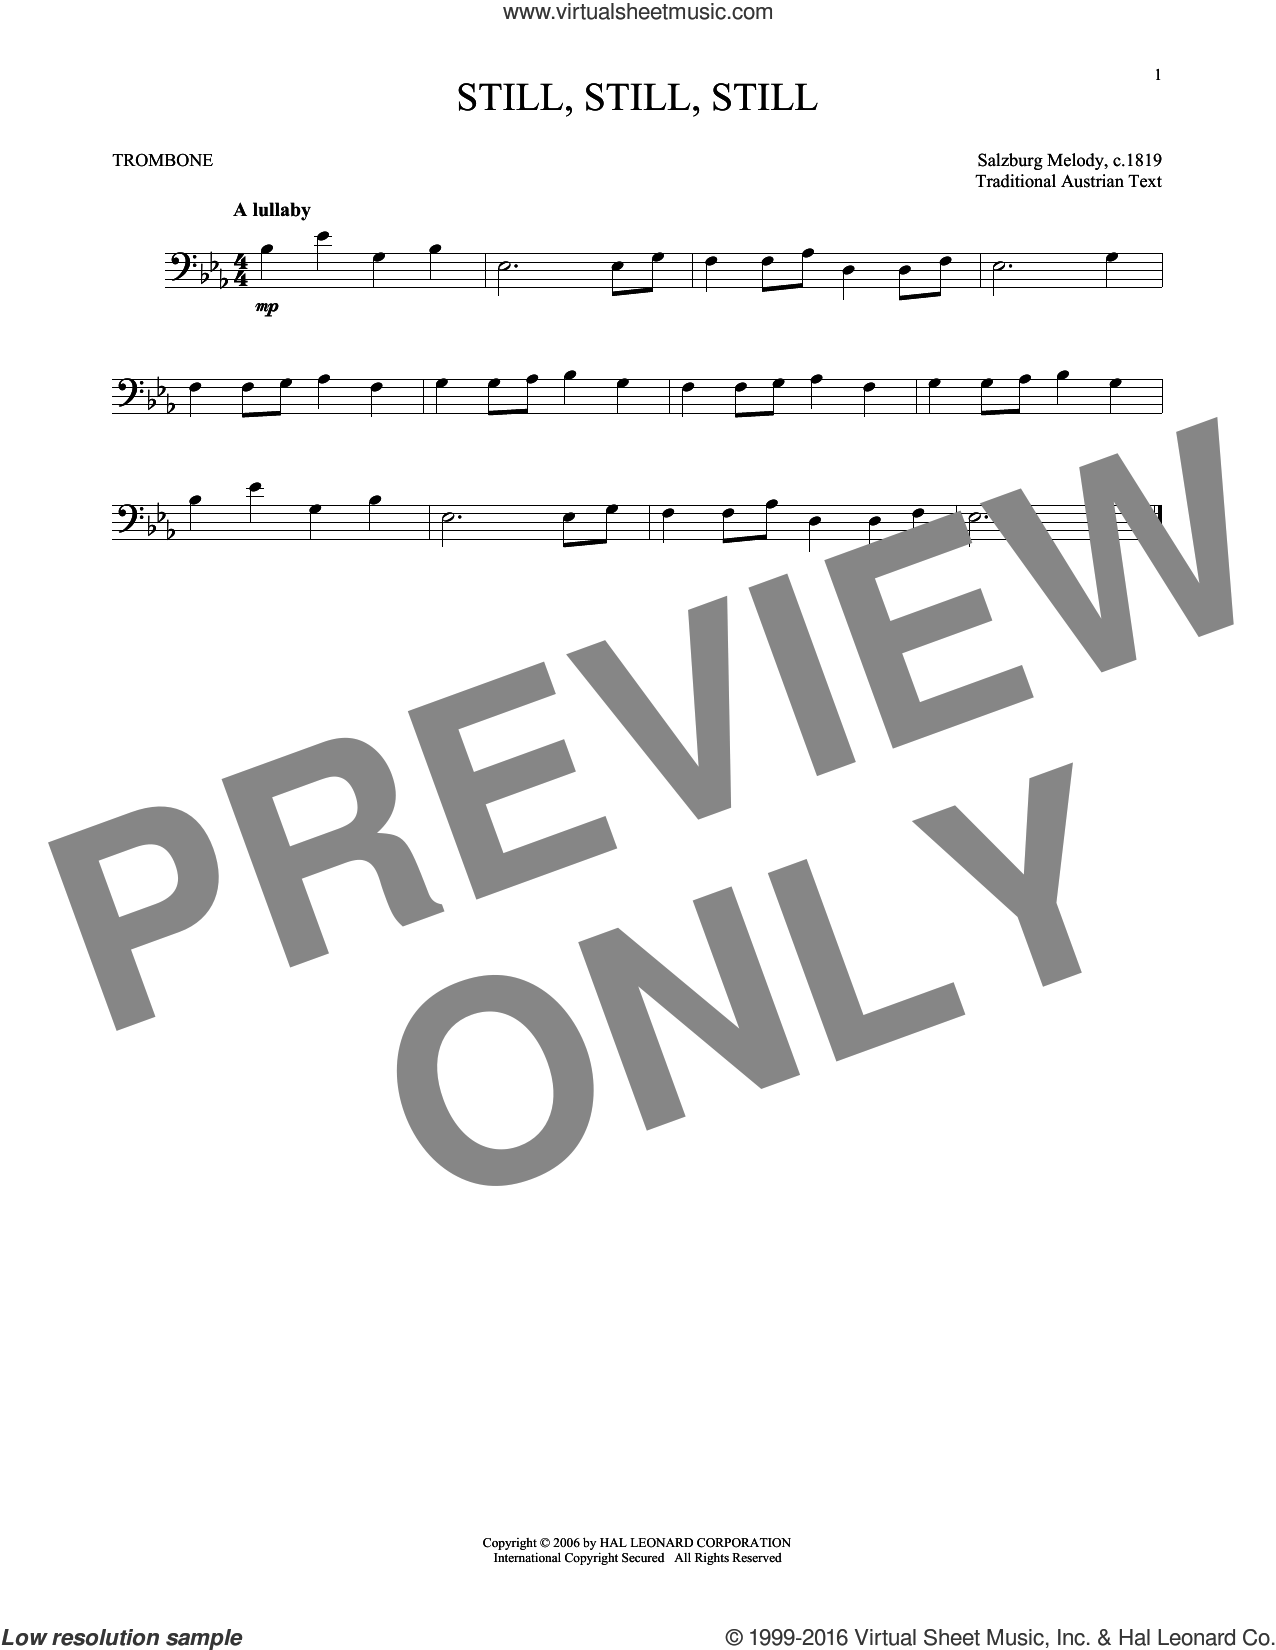 Still, Still, Still sheet music for trombone solo. Score Image Preview.